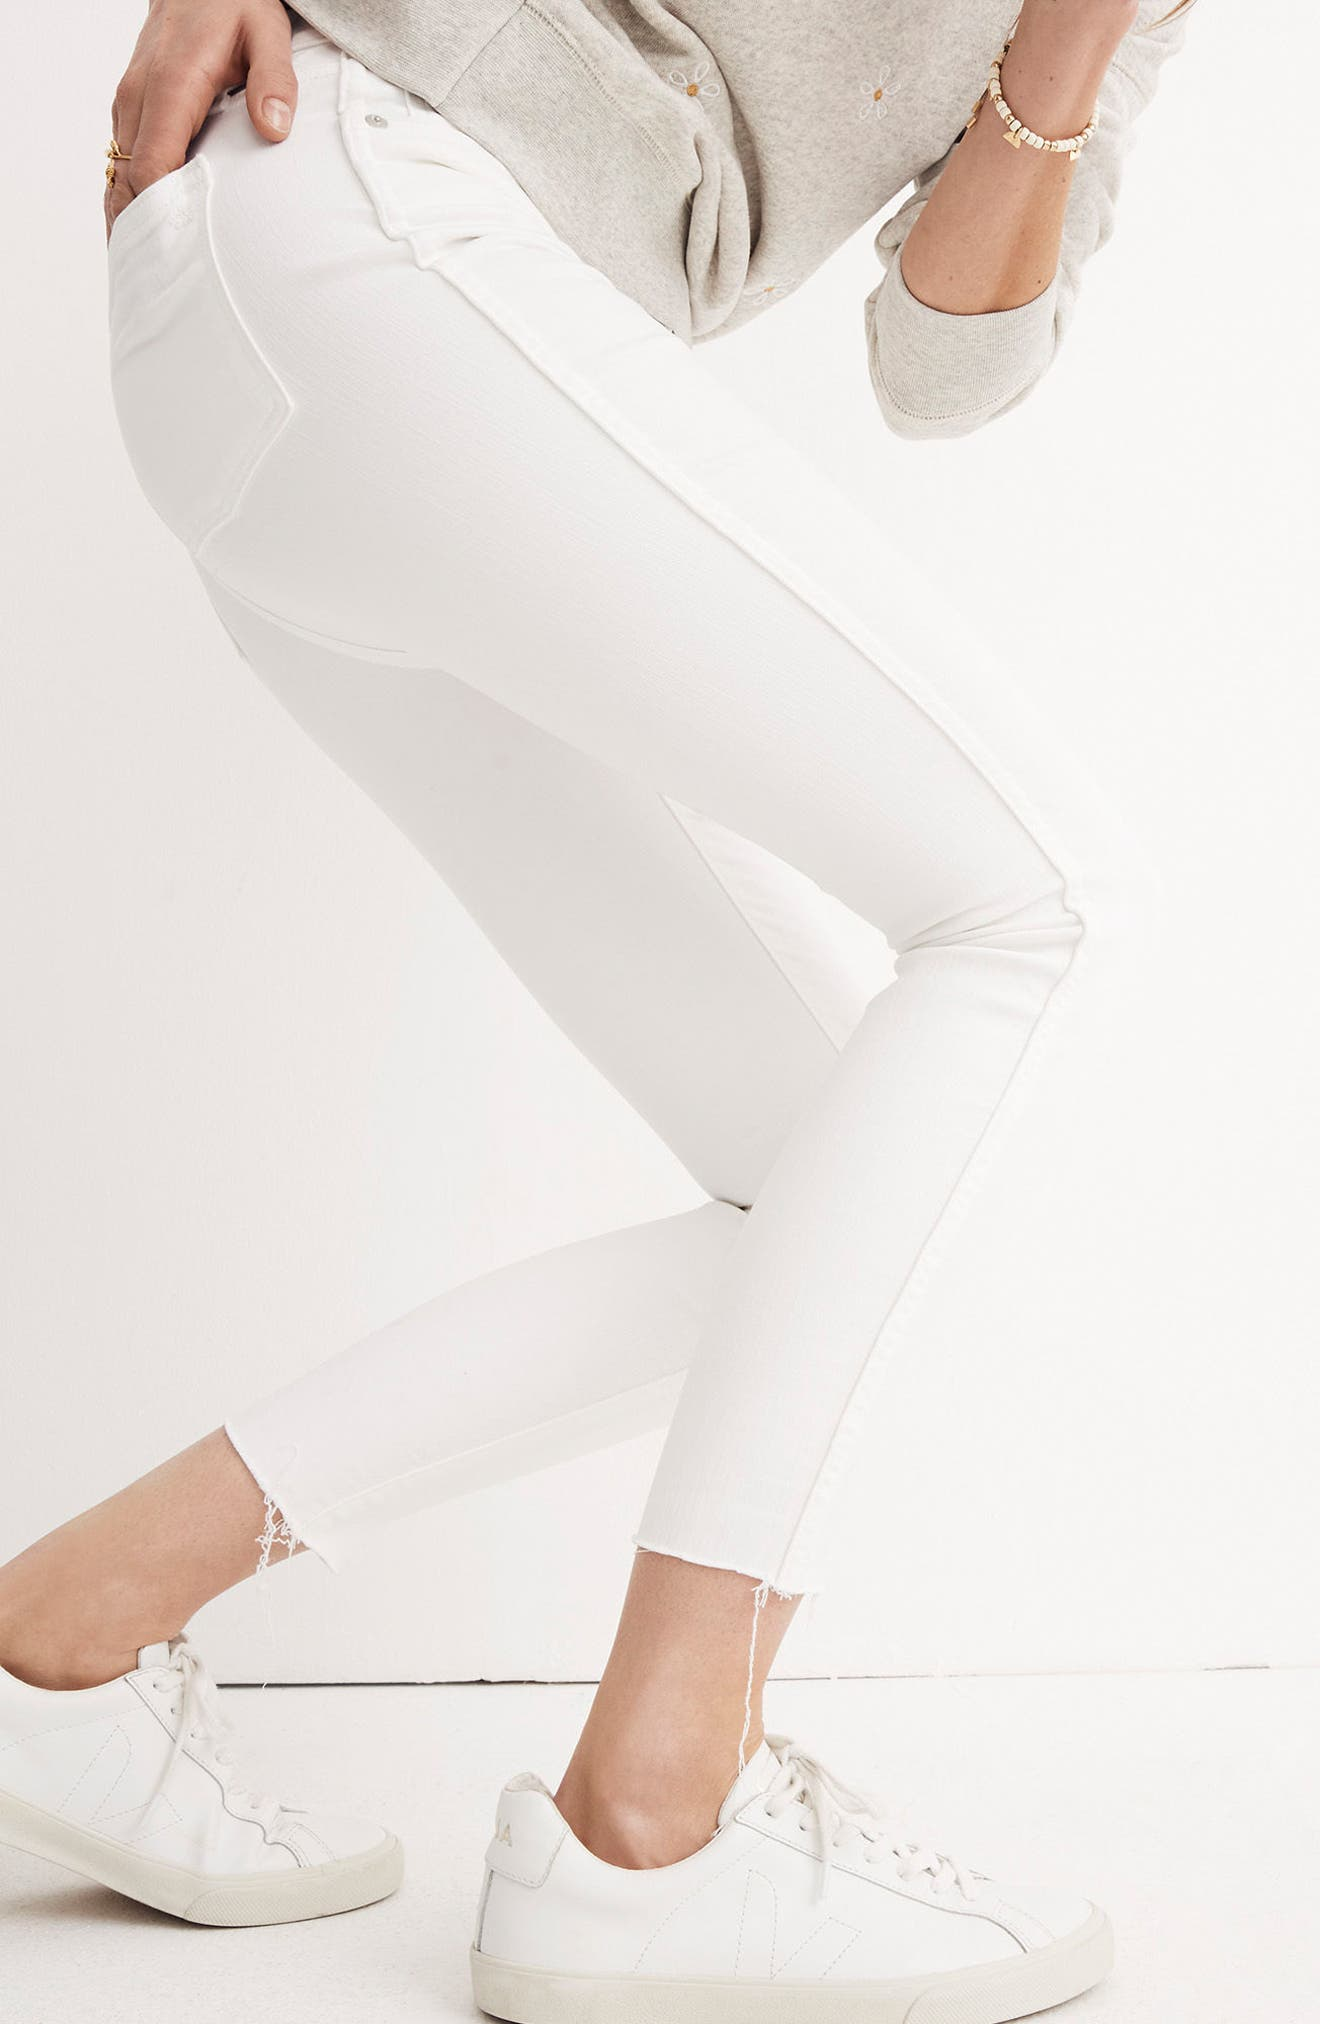 10-Inch Button High Waist Crop Skinny Jeans,                             Alternate thumbnail 8, color,                             PURE WHITE